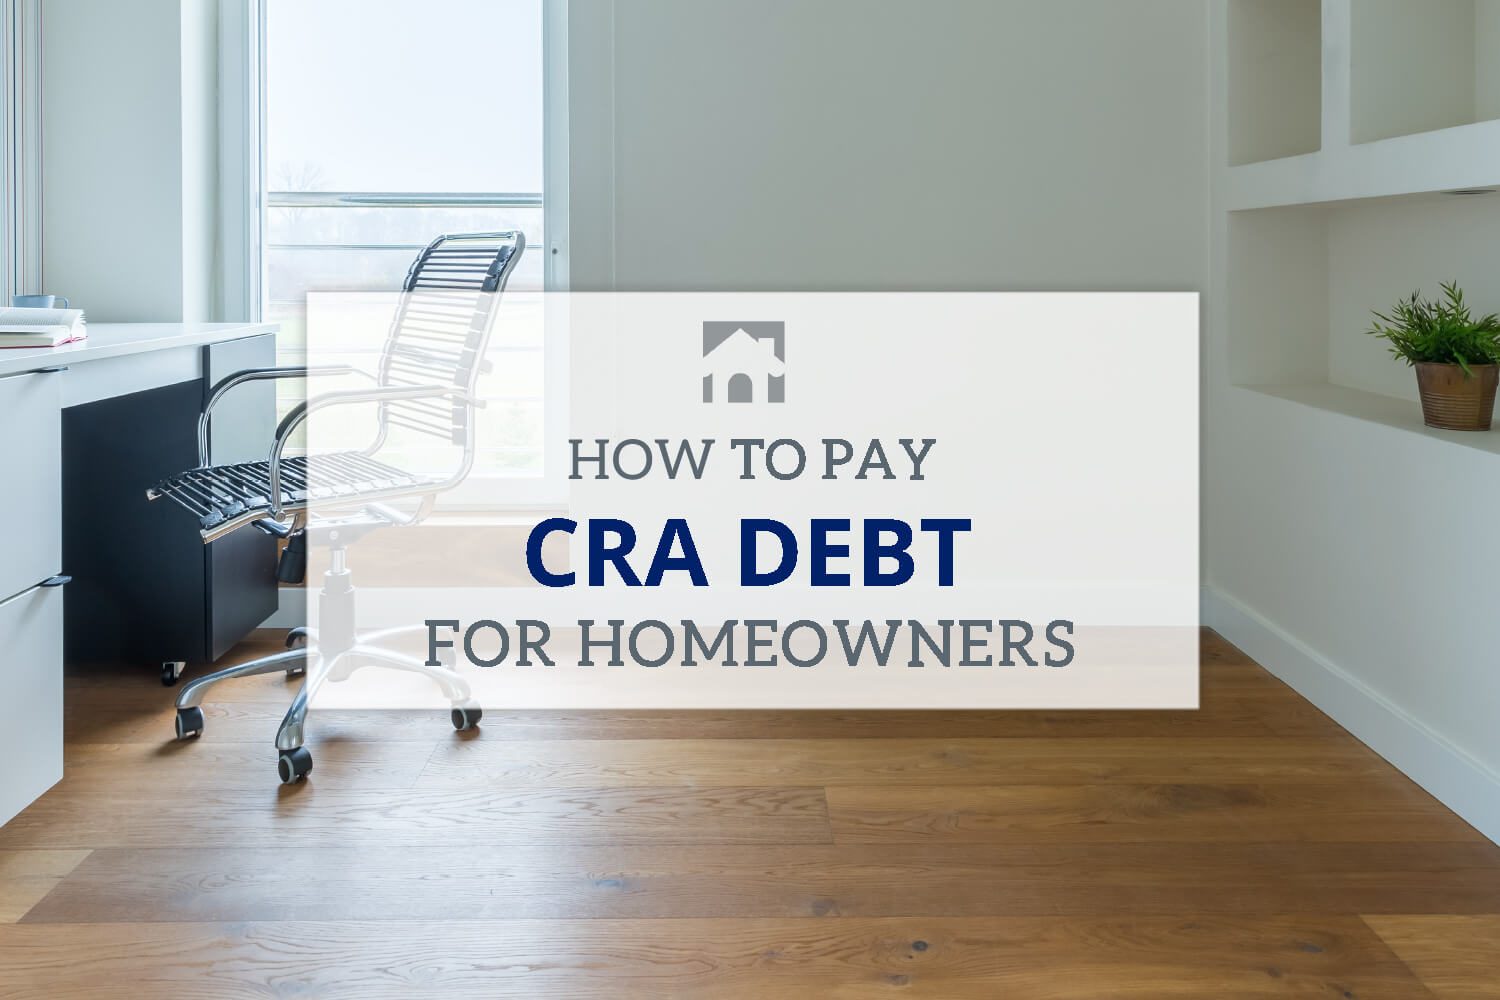 How to pay CRA Debt For Home owners text overlay with desk in background